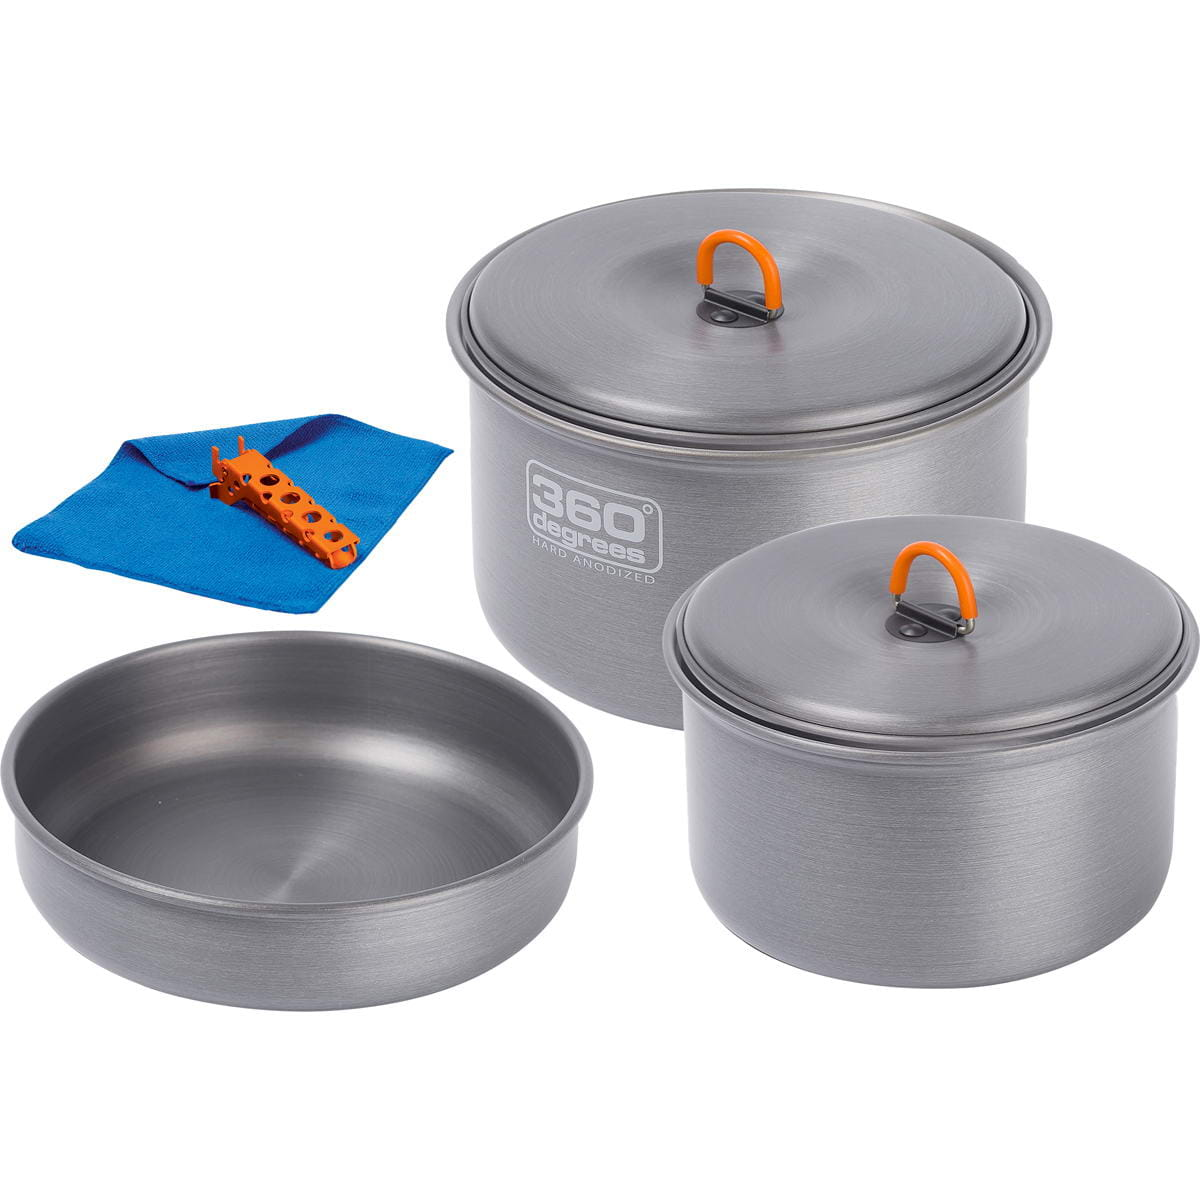 360° degrees Furno Large Cook Set - Kochtopfset - Bild 1